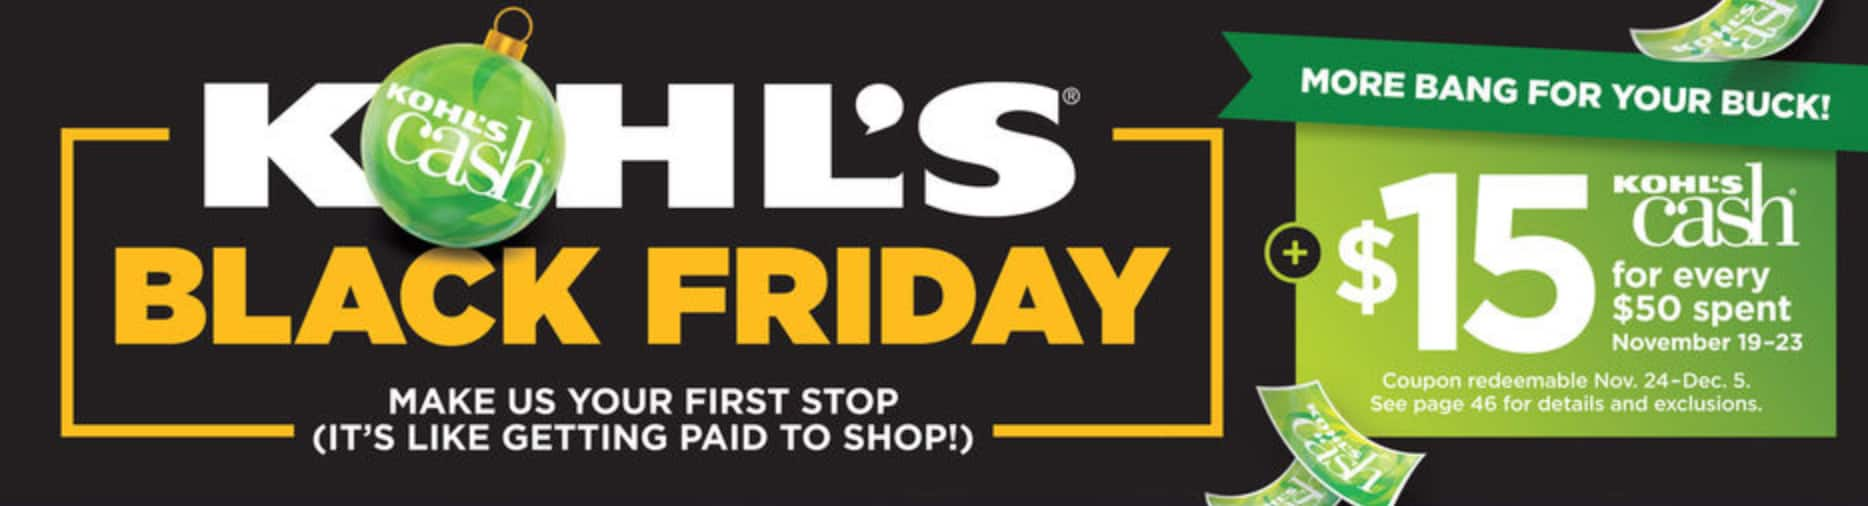 1cb2a2b79da The Kohl's Black Friday Ad Is Here and These Are the Best Deals